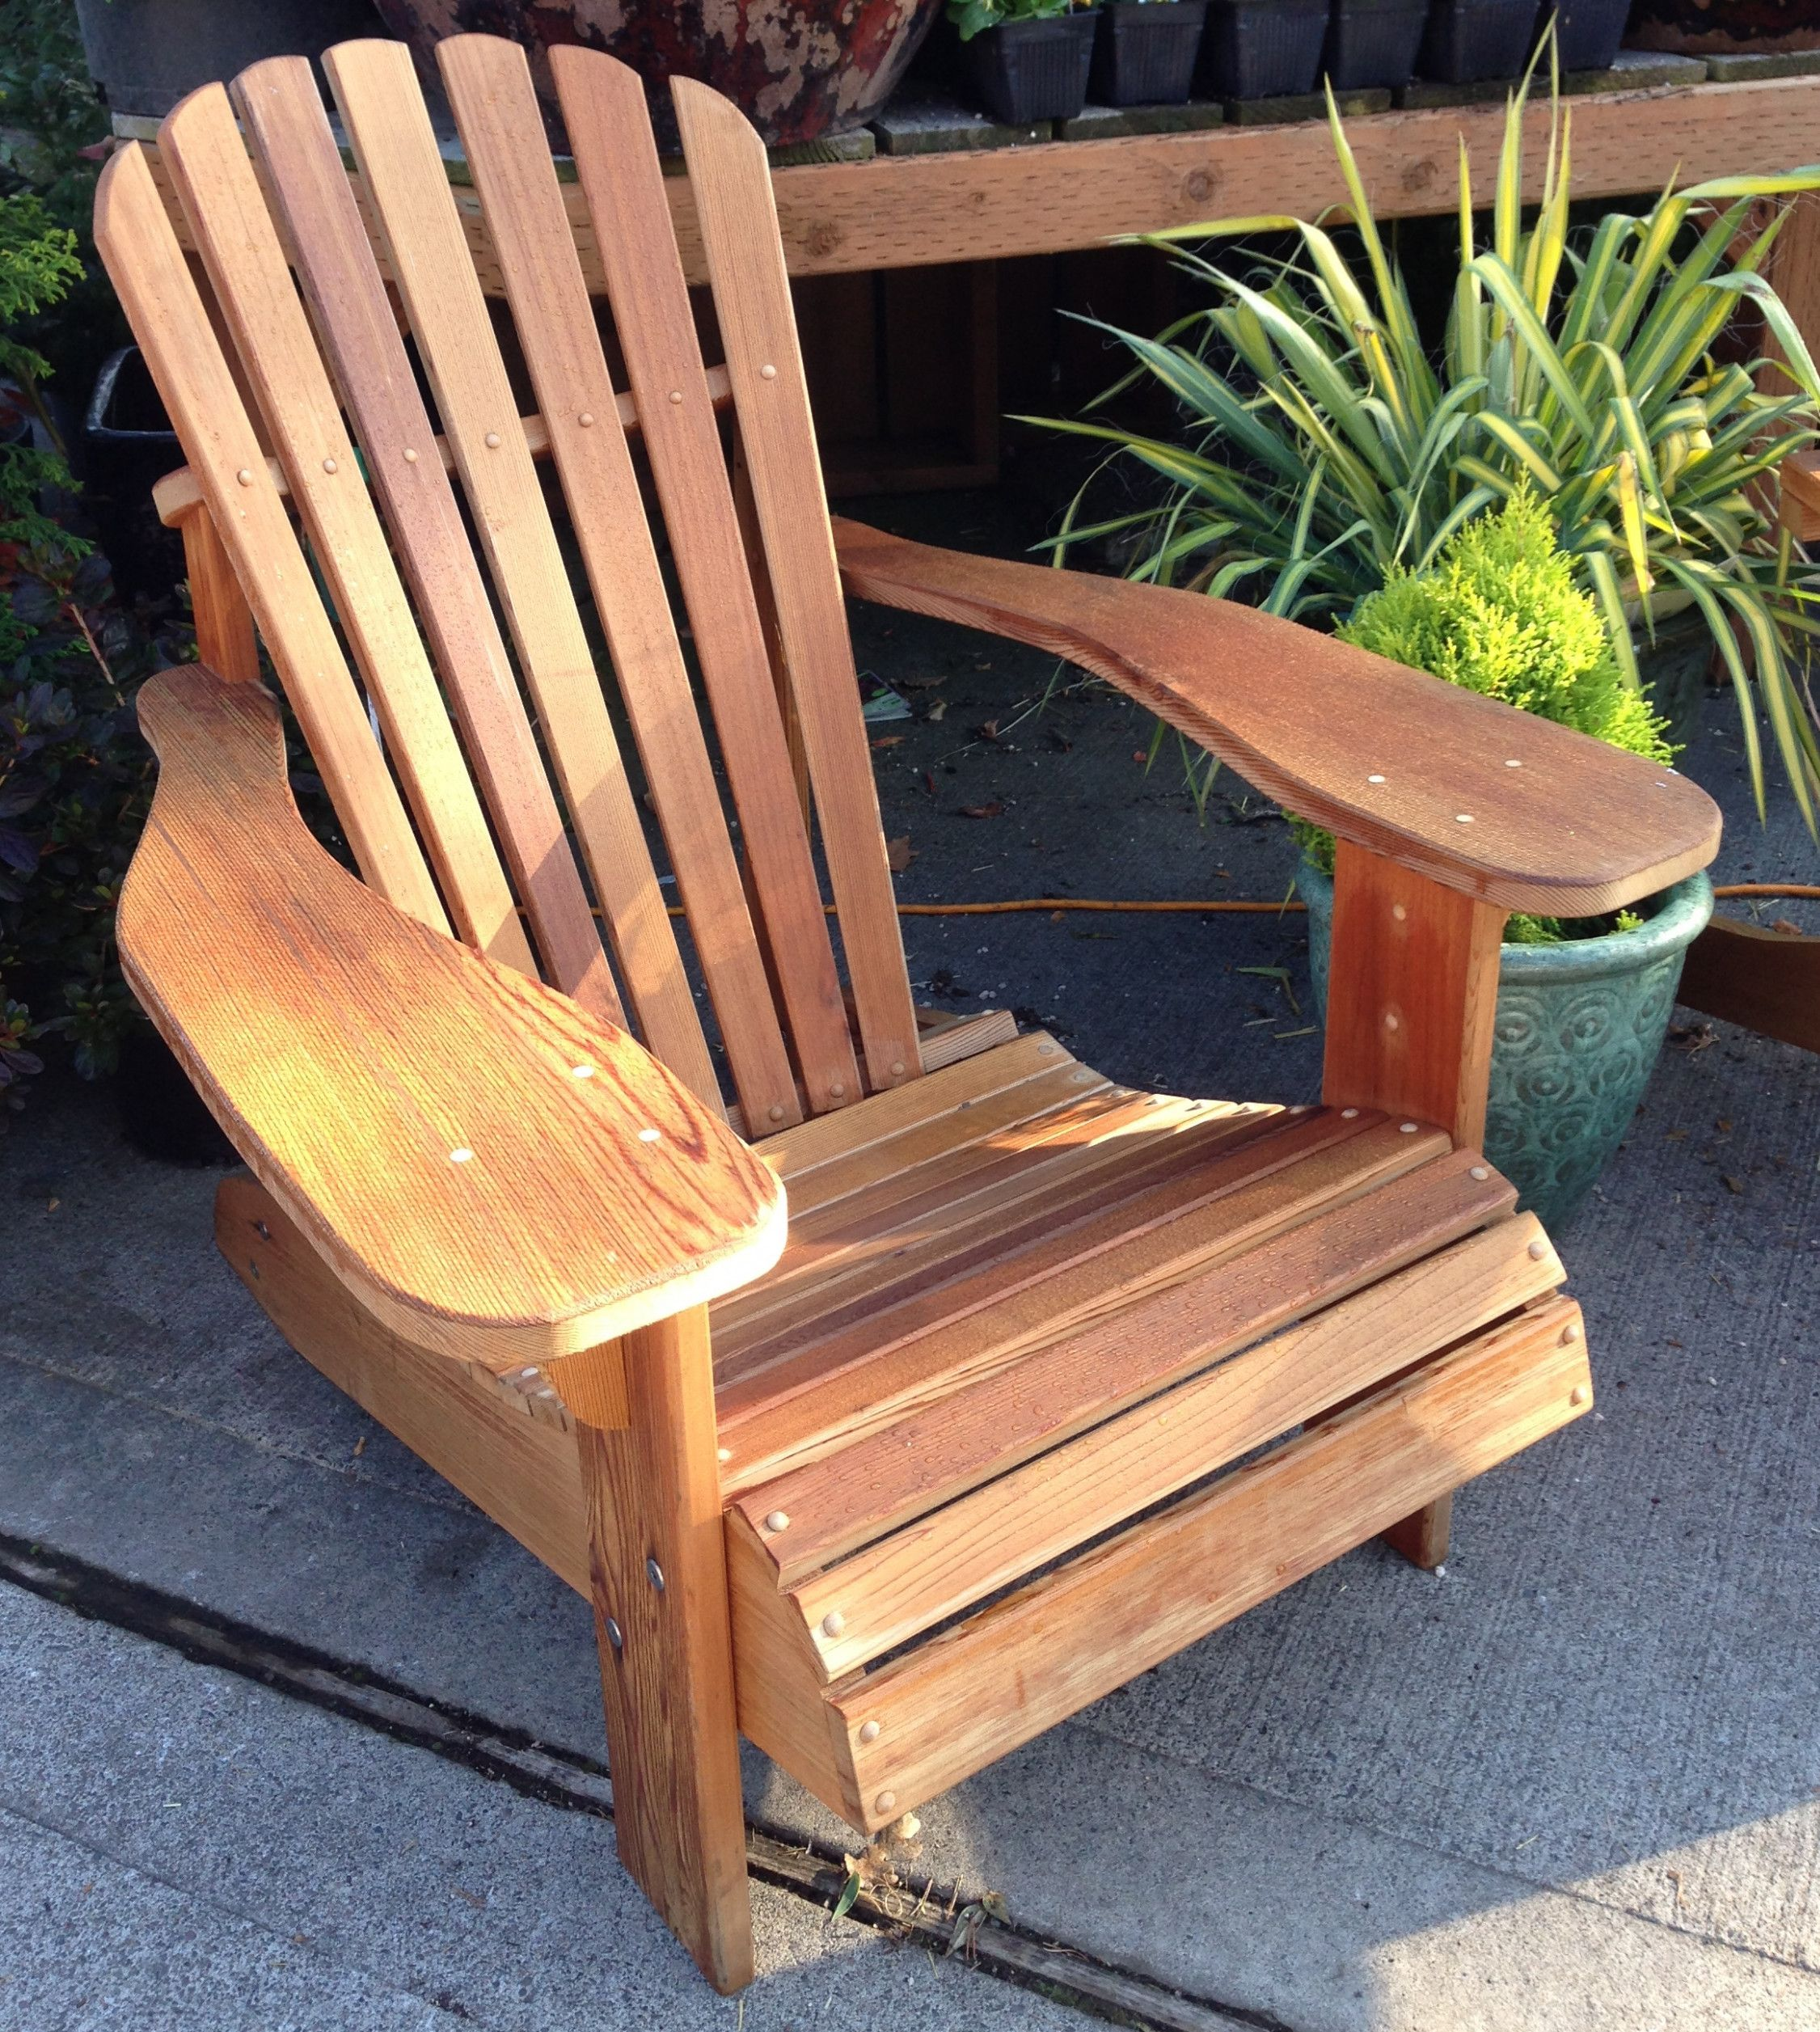 How To Care For Teak Adirondack Chairs Teak Adirondack Chair Care